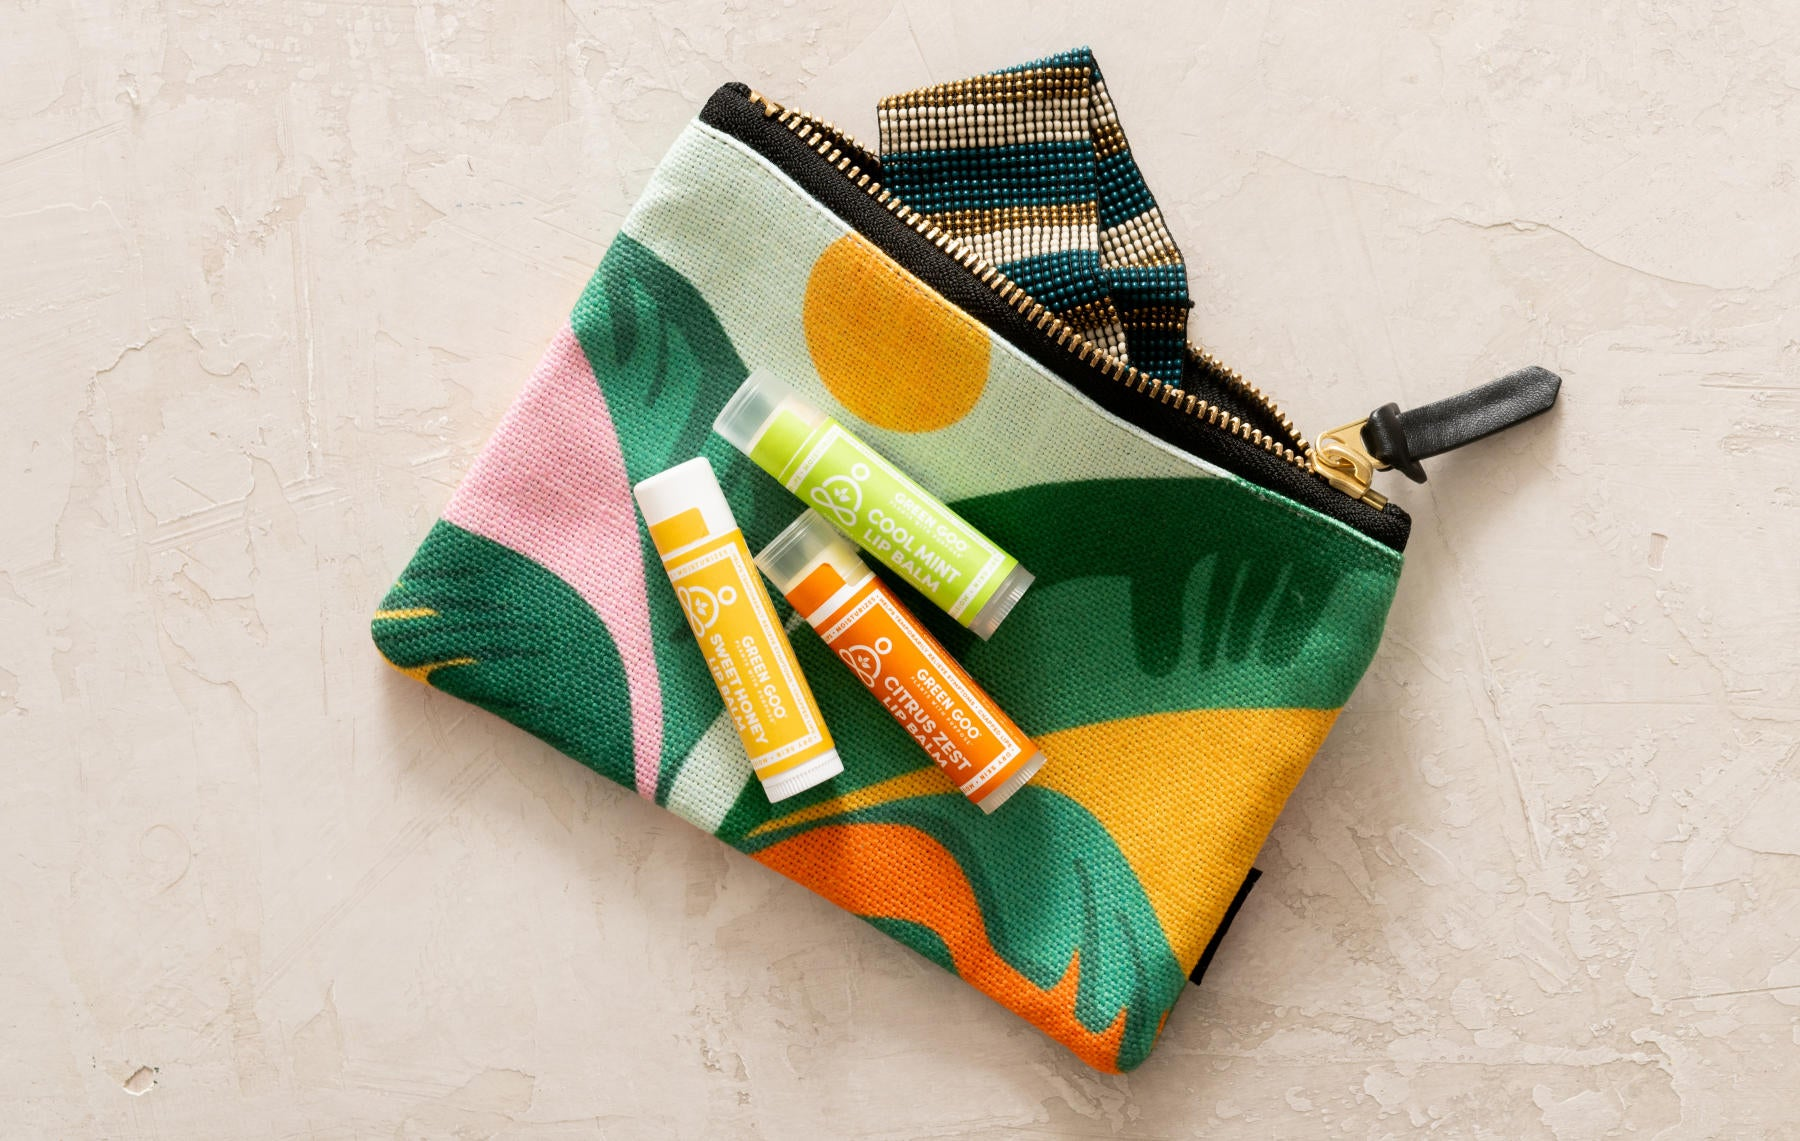 Green Goo's Citrus Zest, Cool Mint, and Sweet Honey lip balms laying on a tropically floral makeup pouch